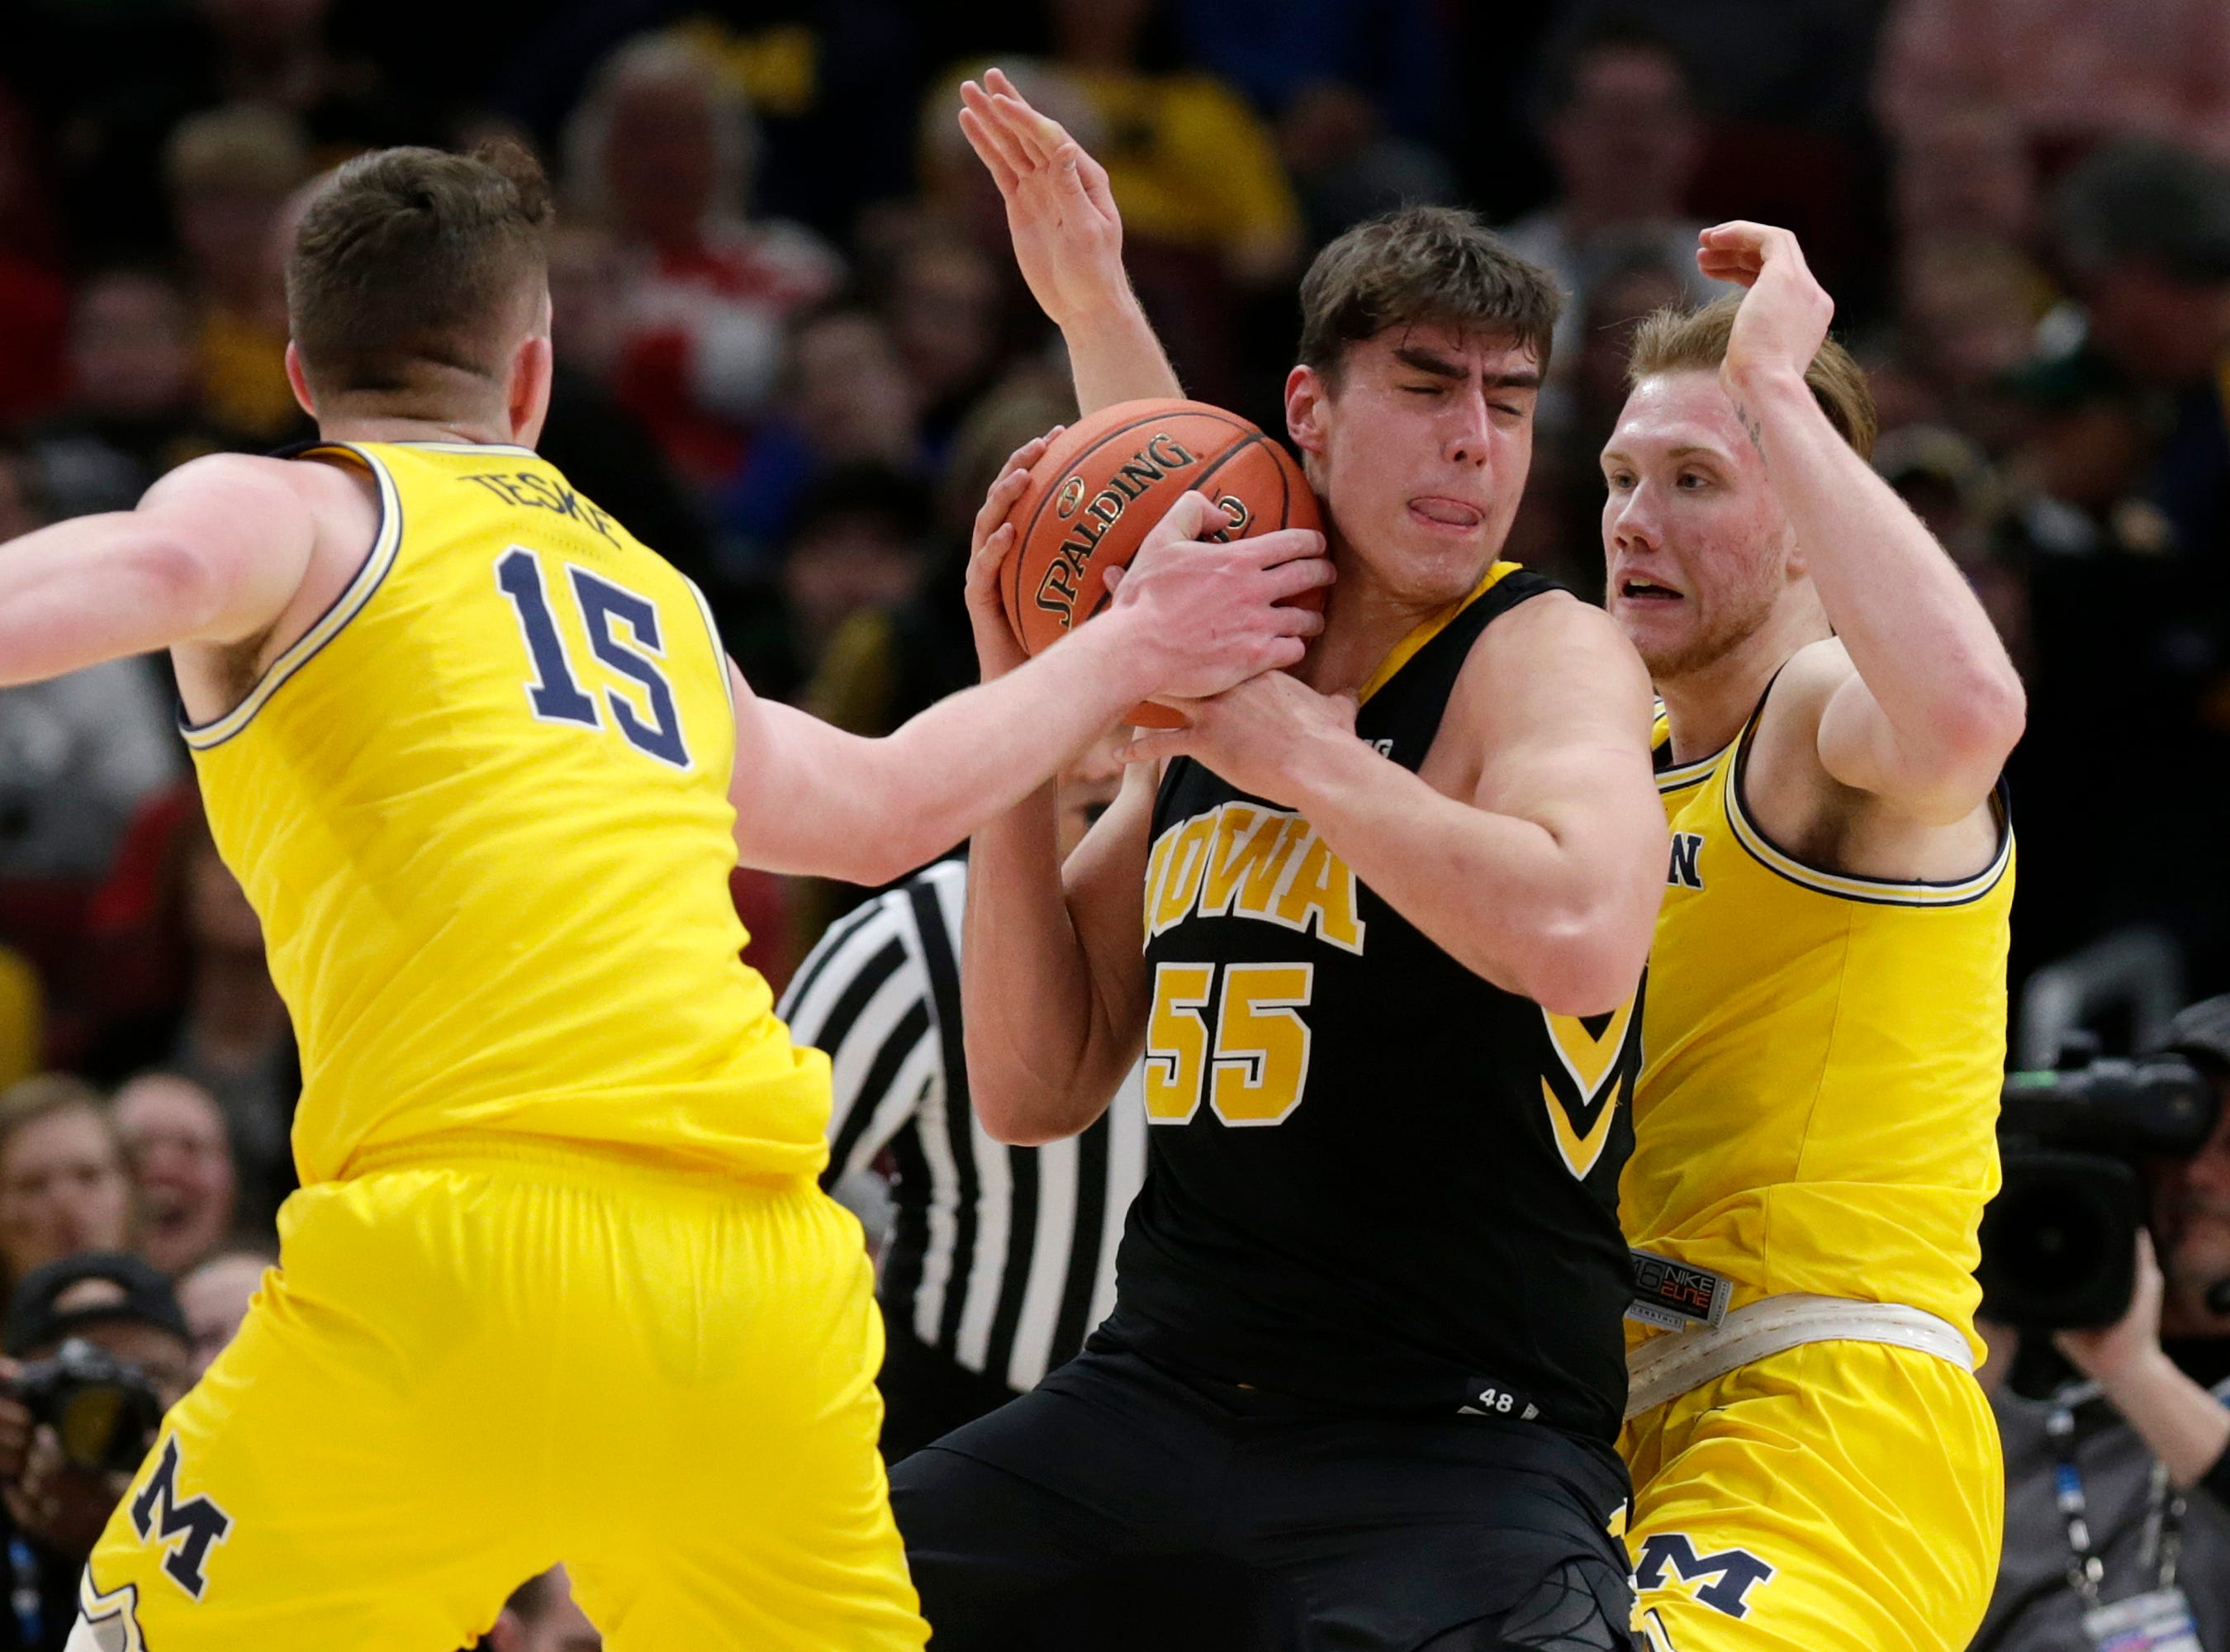 Iowa's Luka Garza (55) battles for the possession of the ball against Michigan's Jon Teske (15) during the first half.